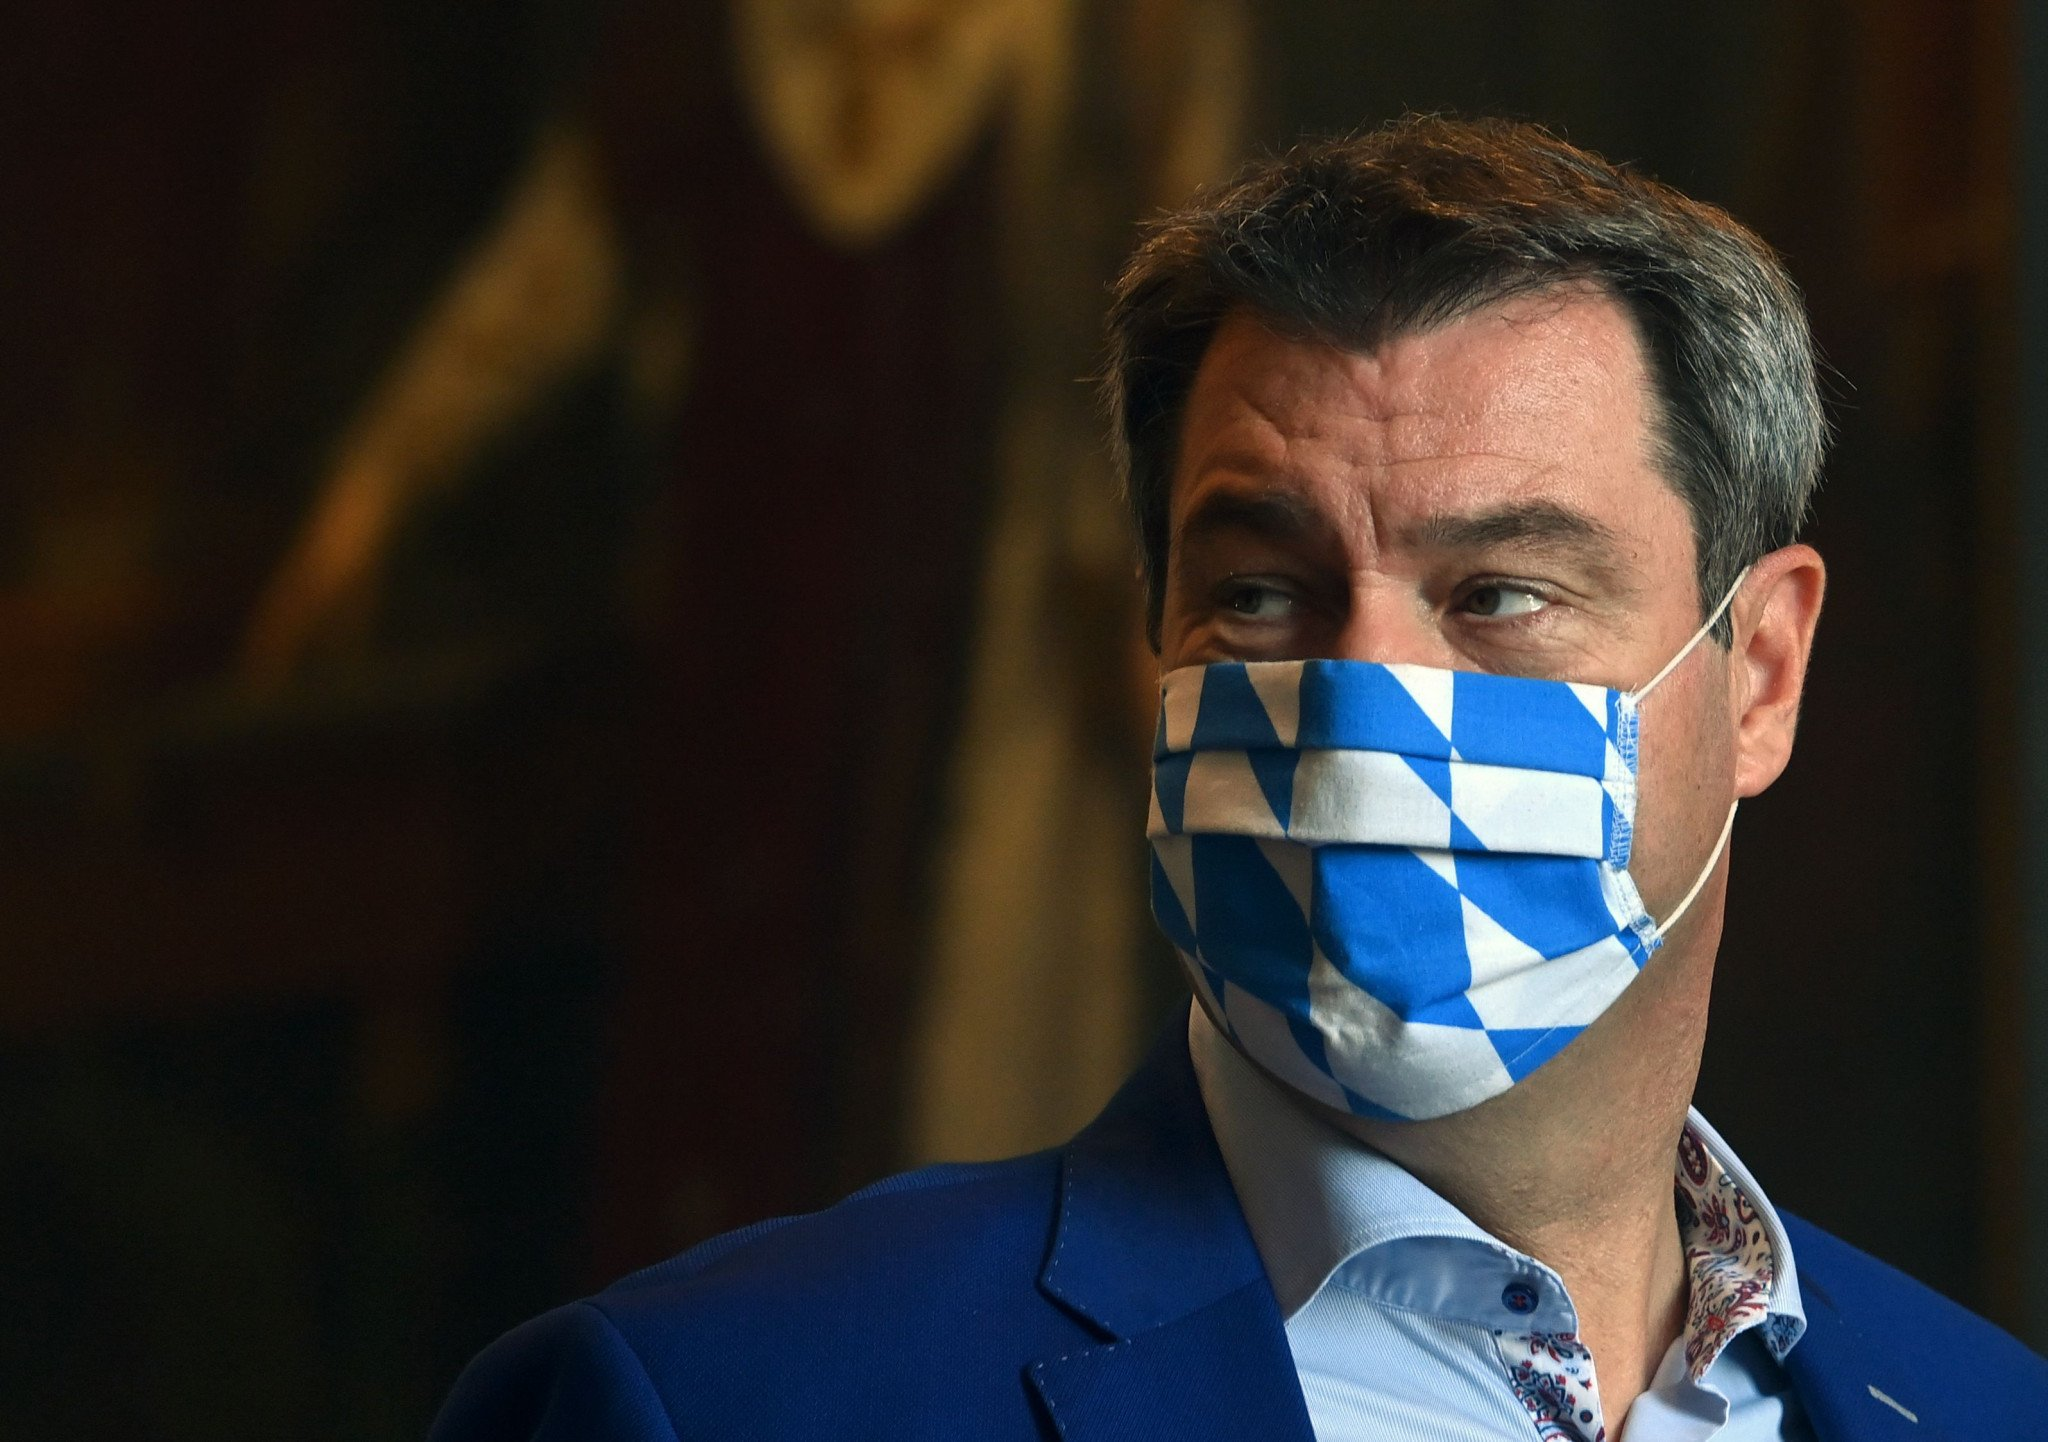 Bavarian Prime Minister Söder takes on patronage of FIS Nordic World Ski Championships